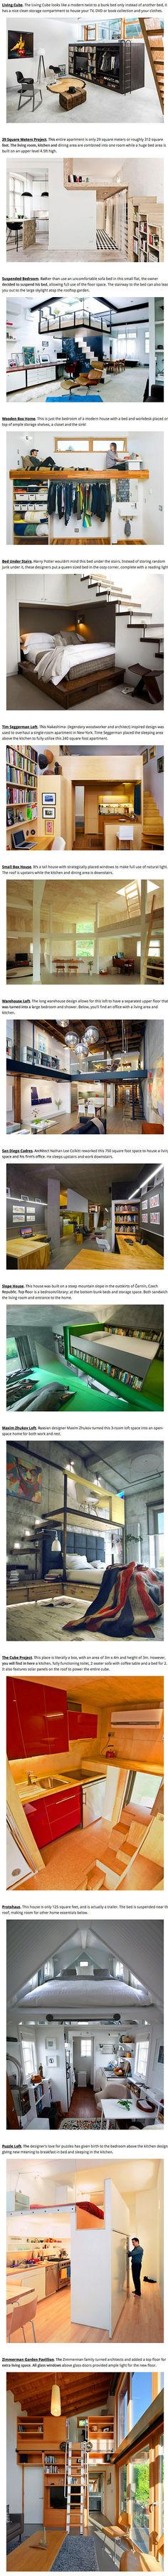 20 Creative Ways for Geeks to Maximize Living Space in Small Homes - TechEBlog